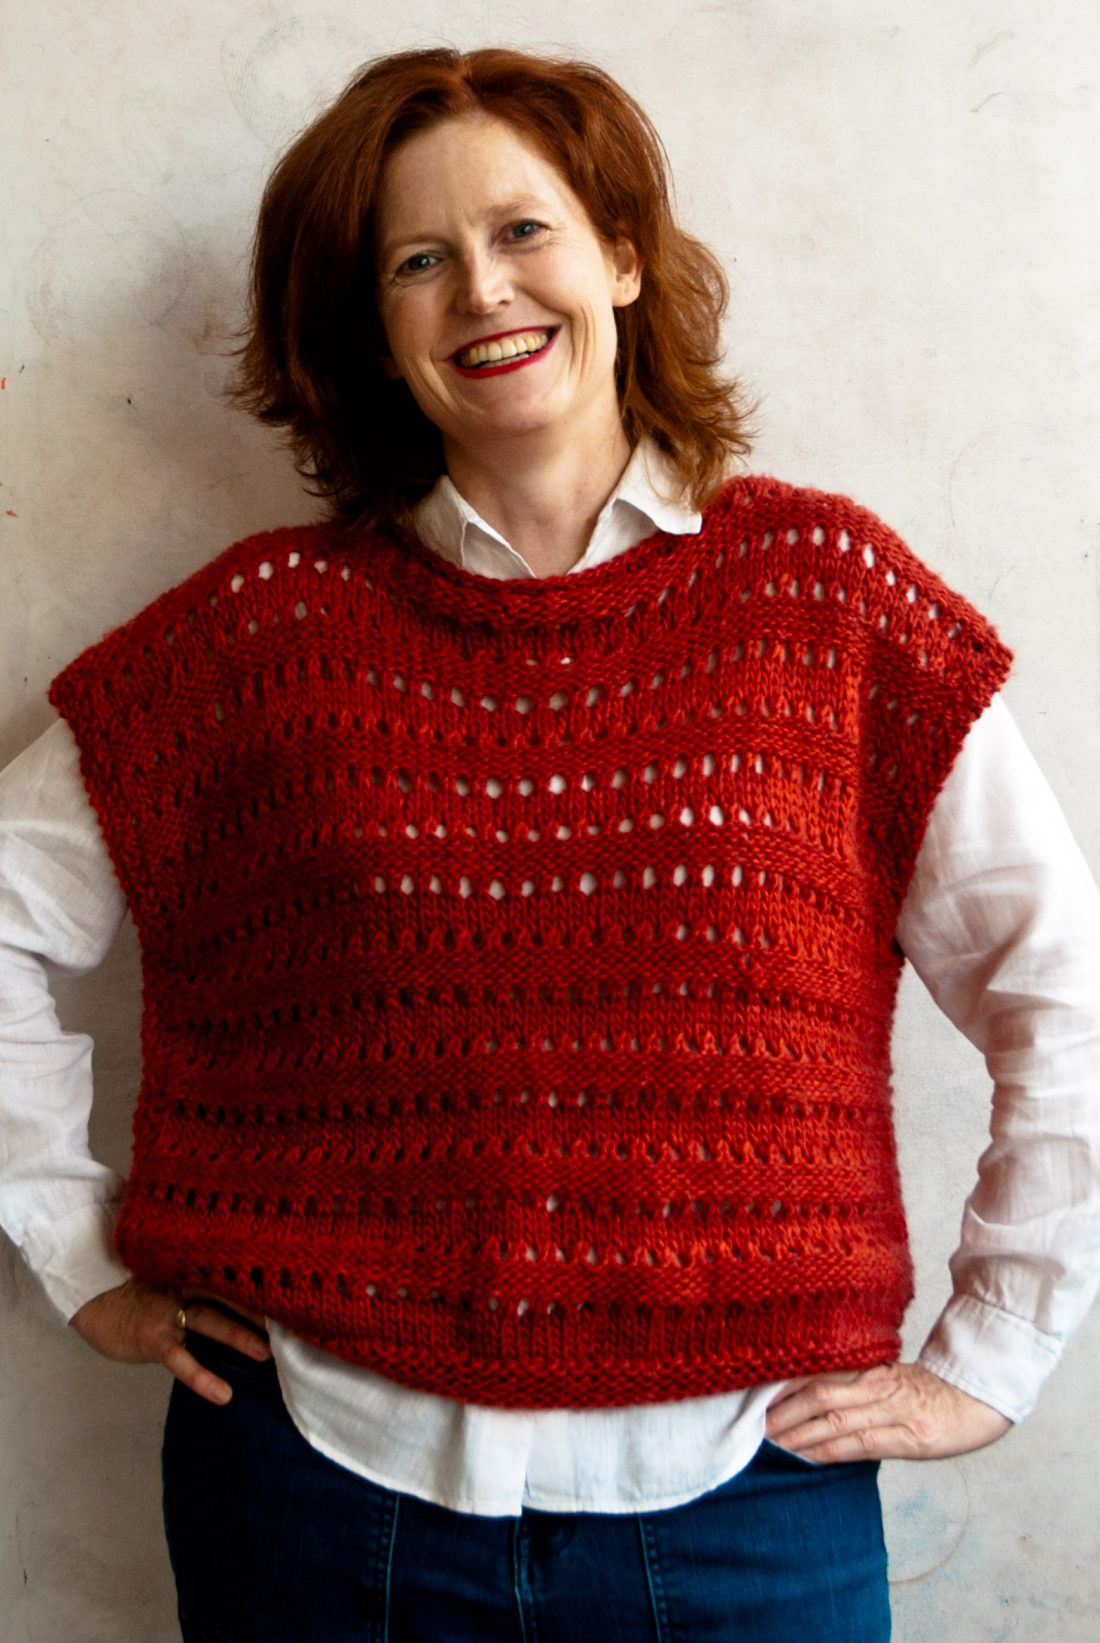 Free knitting pattern design by cowgirlblues of an easy Aran knit top